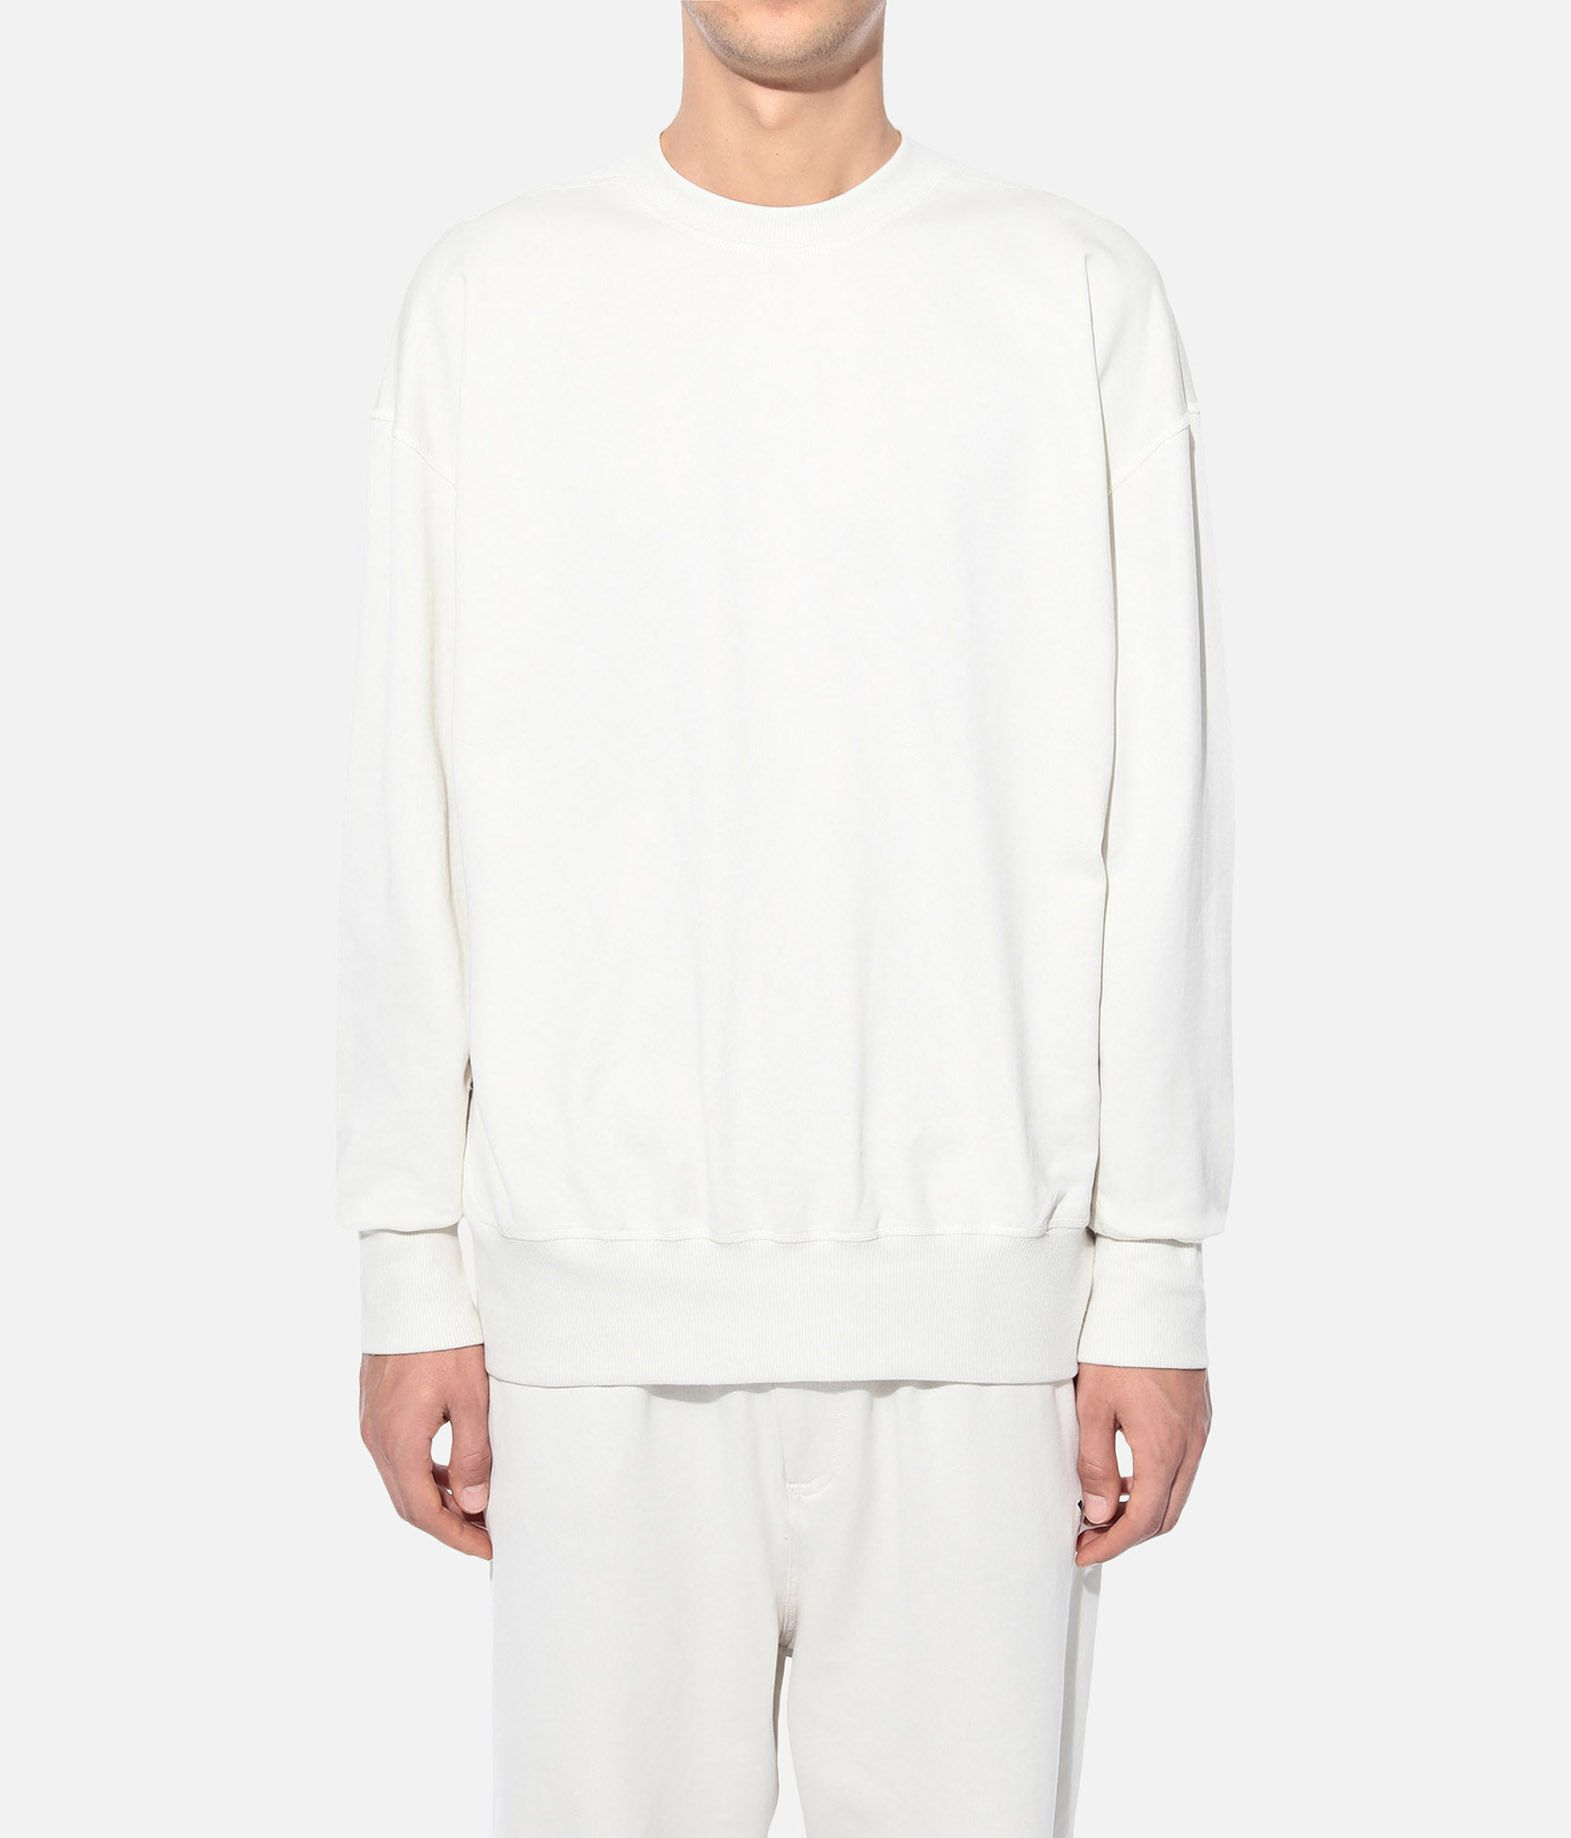 Y-3 Y-3 Signature Sweater Sweatshirt Man r